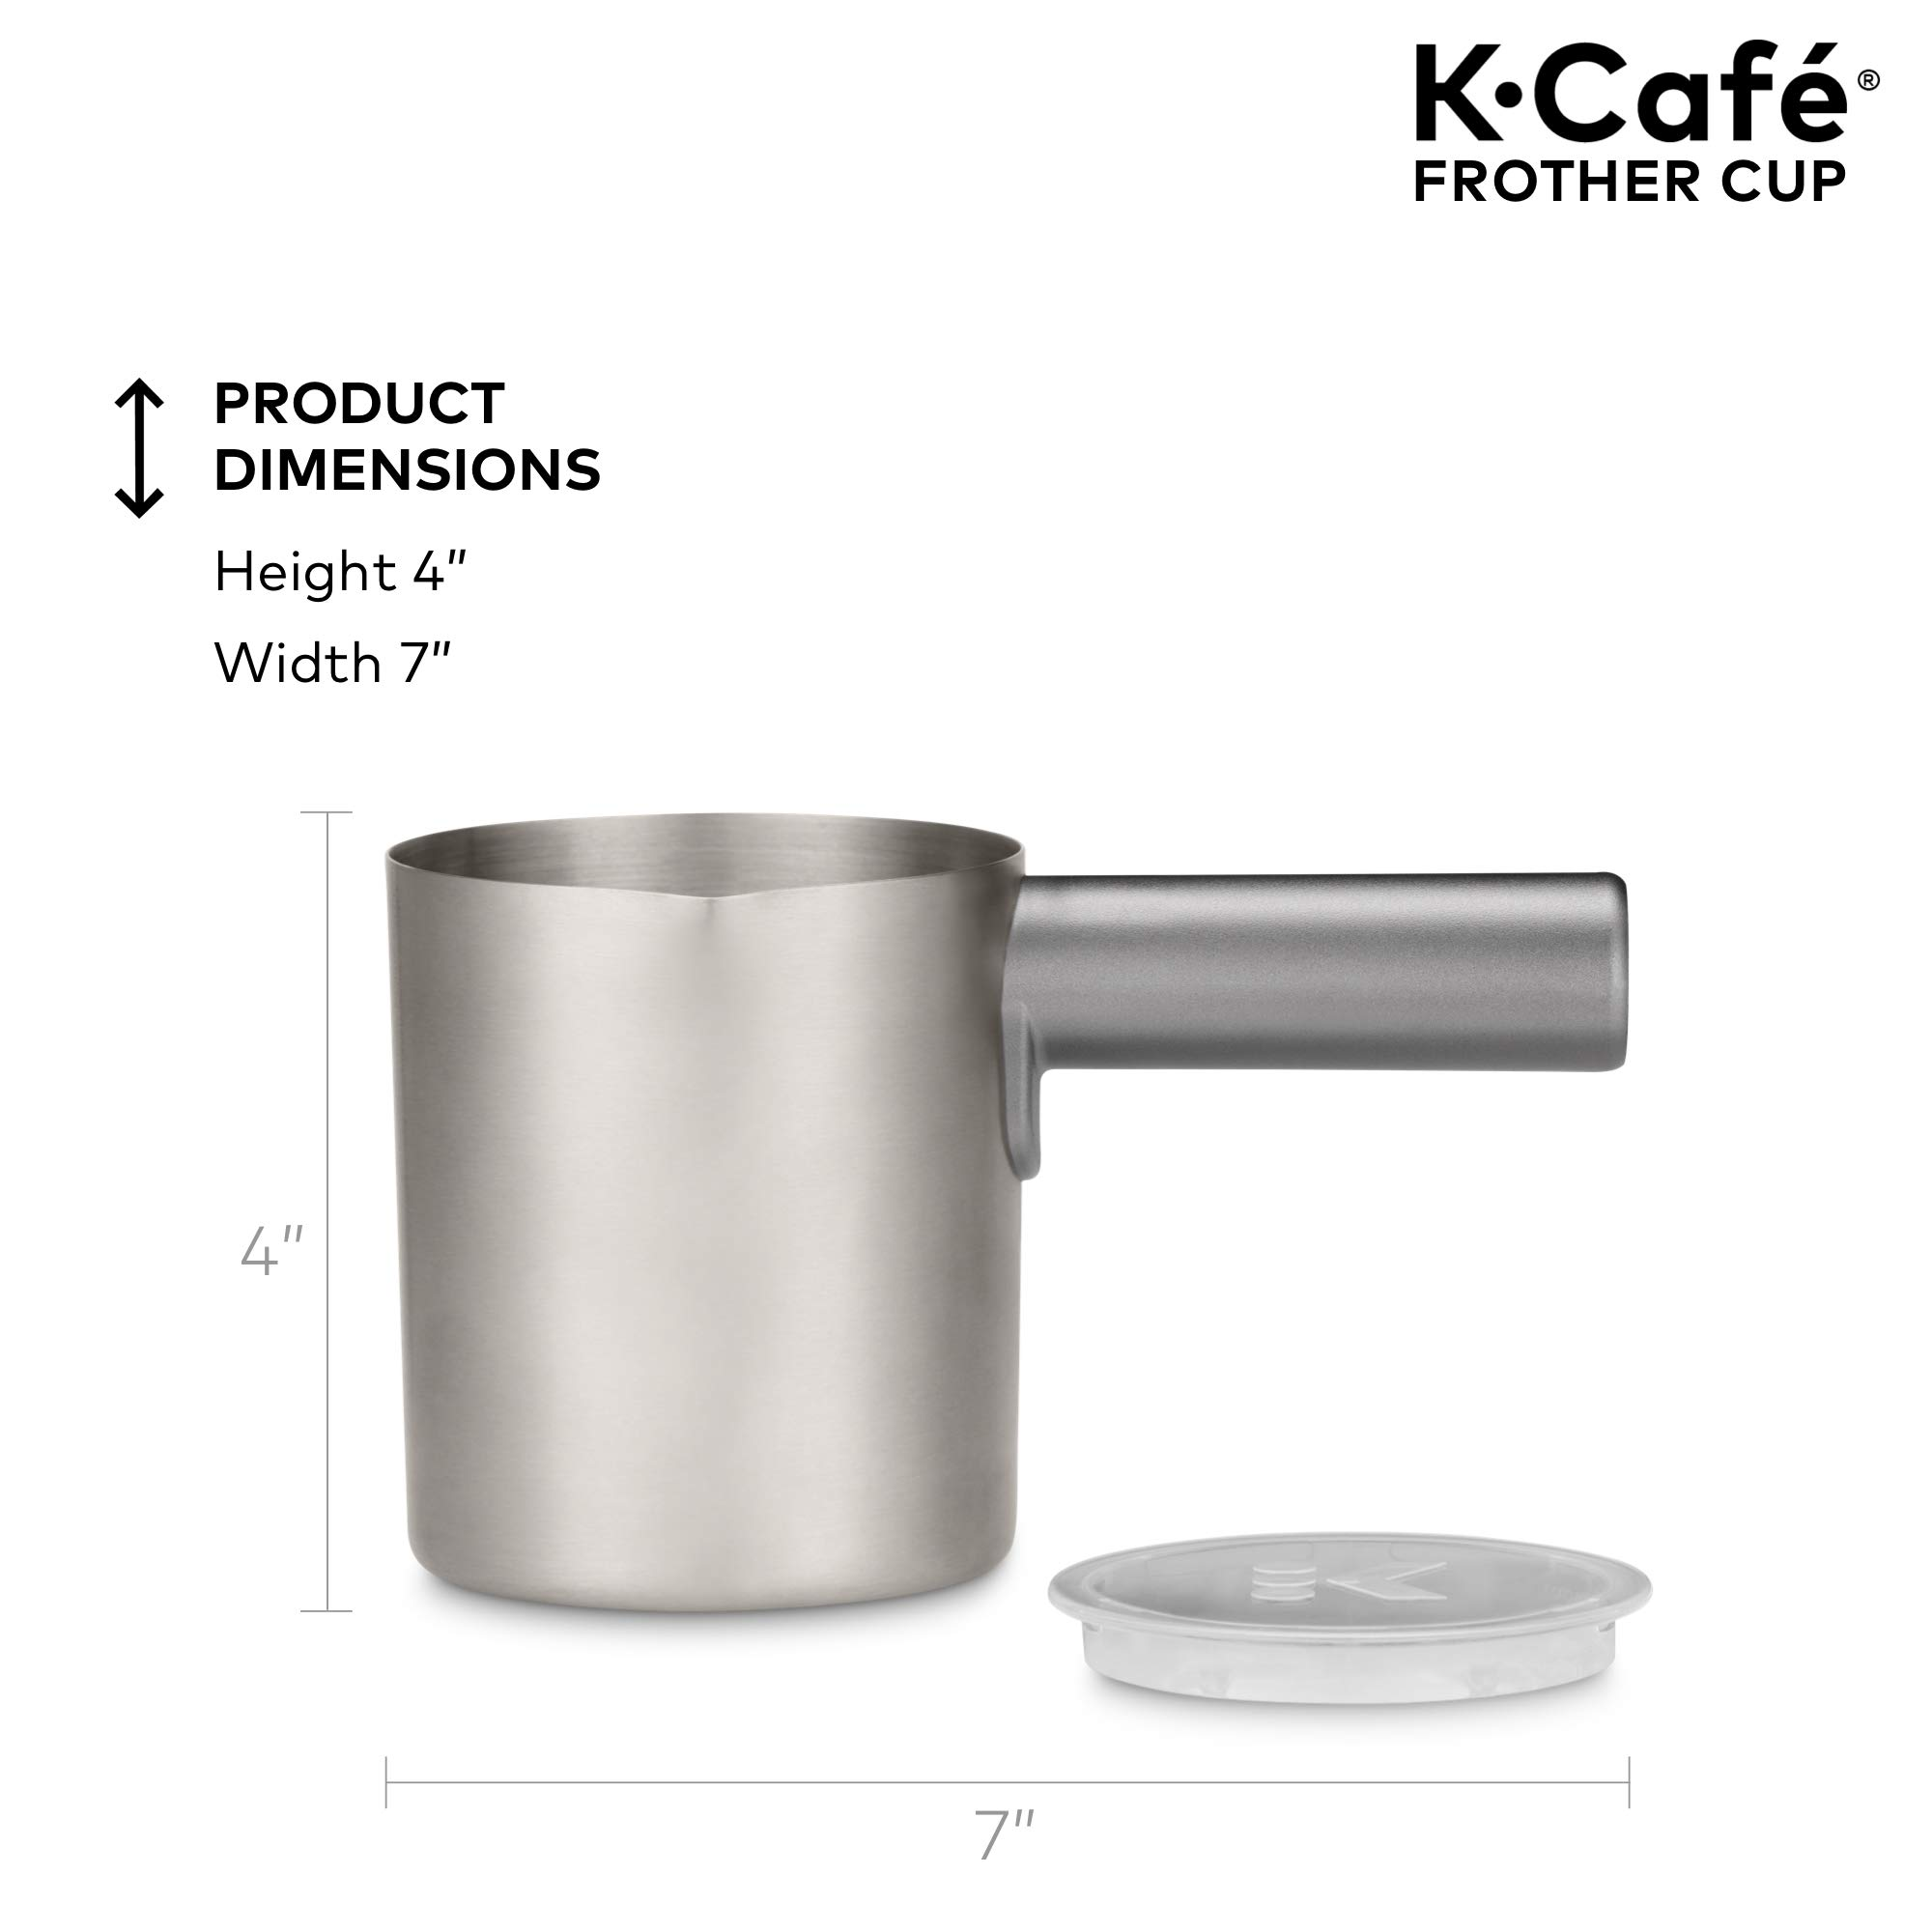 Keurig K-Café Milk Frother, Works with all Dairy and Non-Dairy Milk, Hot and Cold Frothing, Compatible with Keurig K-Café Coffee Makers Only, Nickel by Keurig (Image #4)